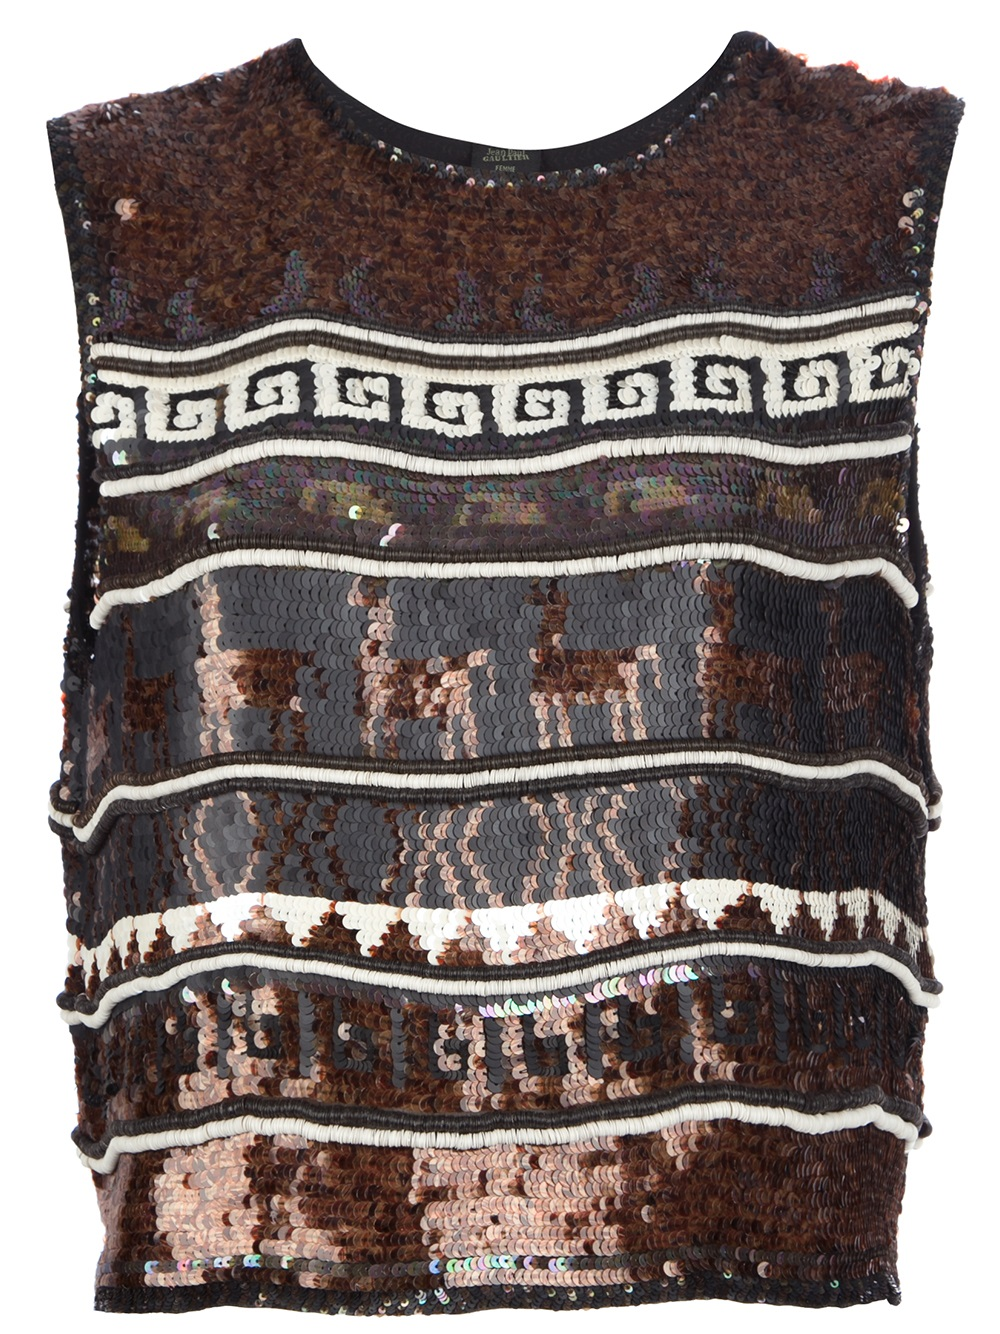 We'd wear this vintage Gaultier top with a pleated nude maxi skirt for the ultimate cool-girl wedding guest look.  Jean Paul Gaultier Vintage Sequin Graphic Vest Top ($767)